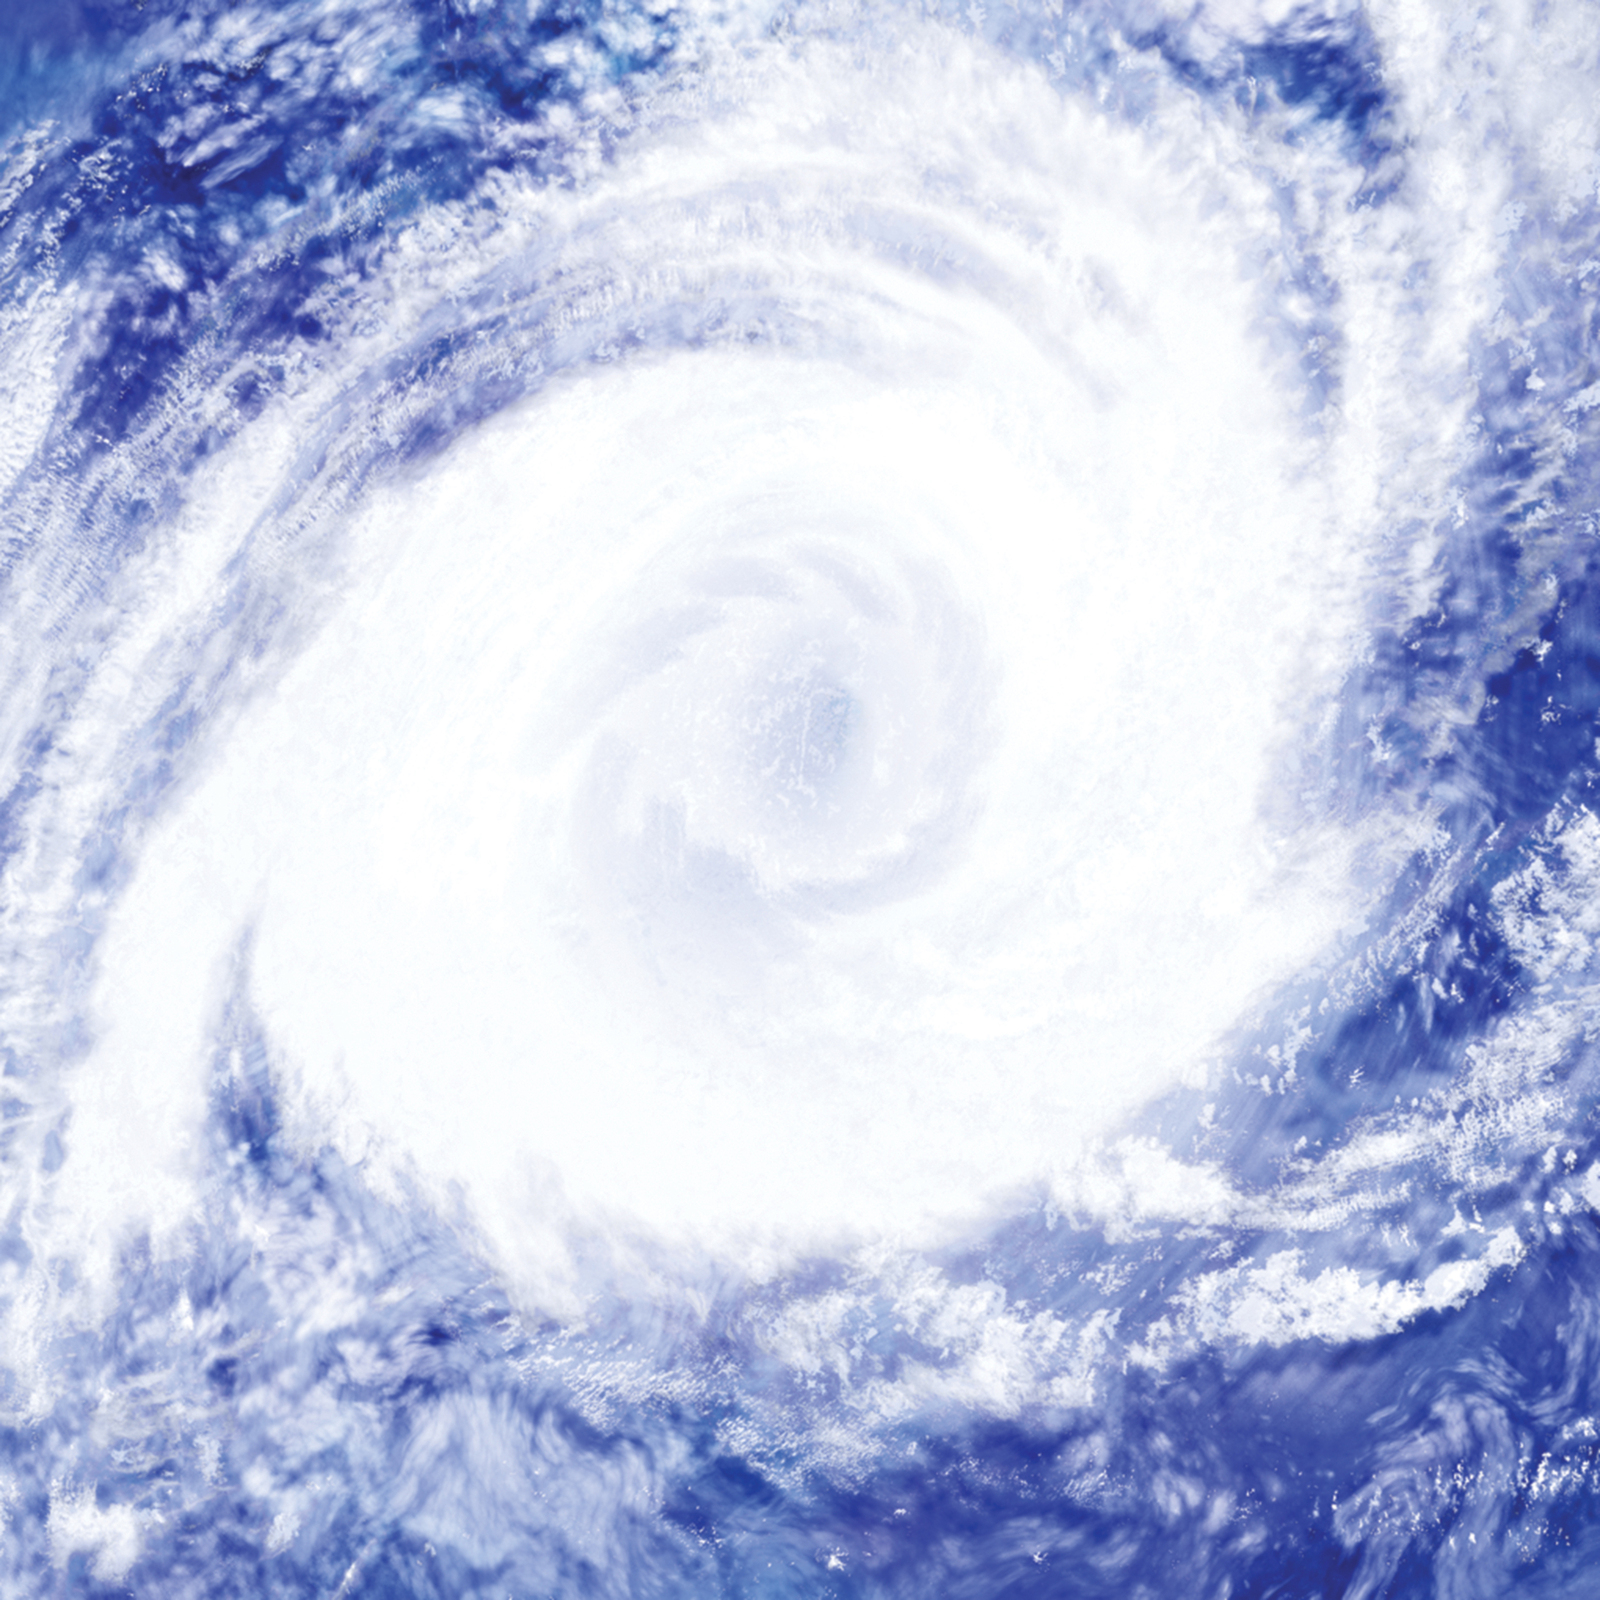 A depiction of a hurricane adapted from a cloud picture.